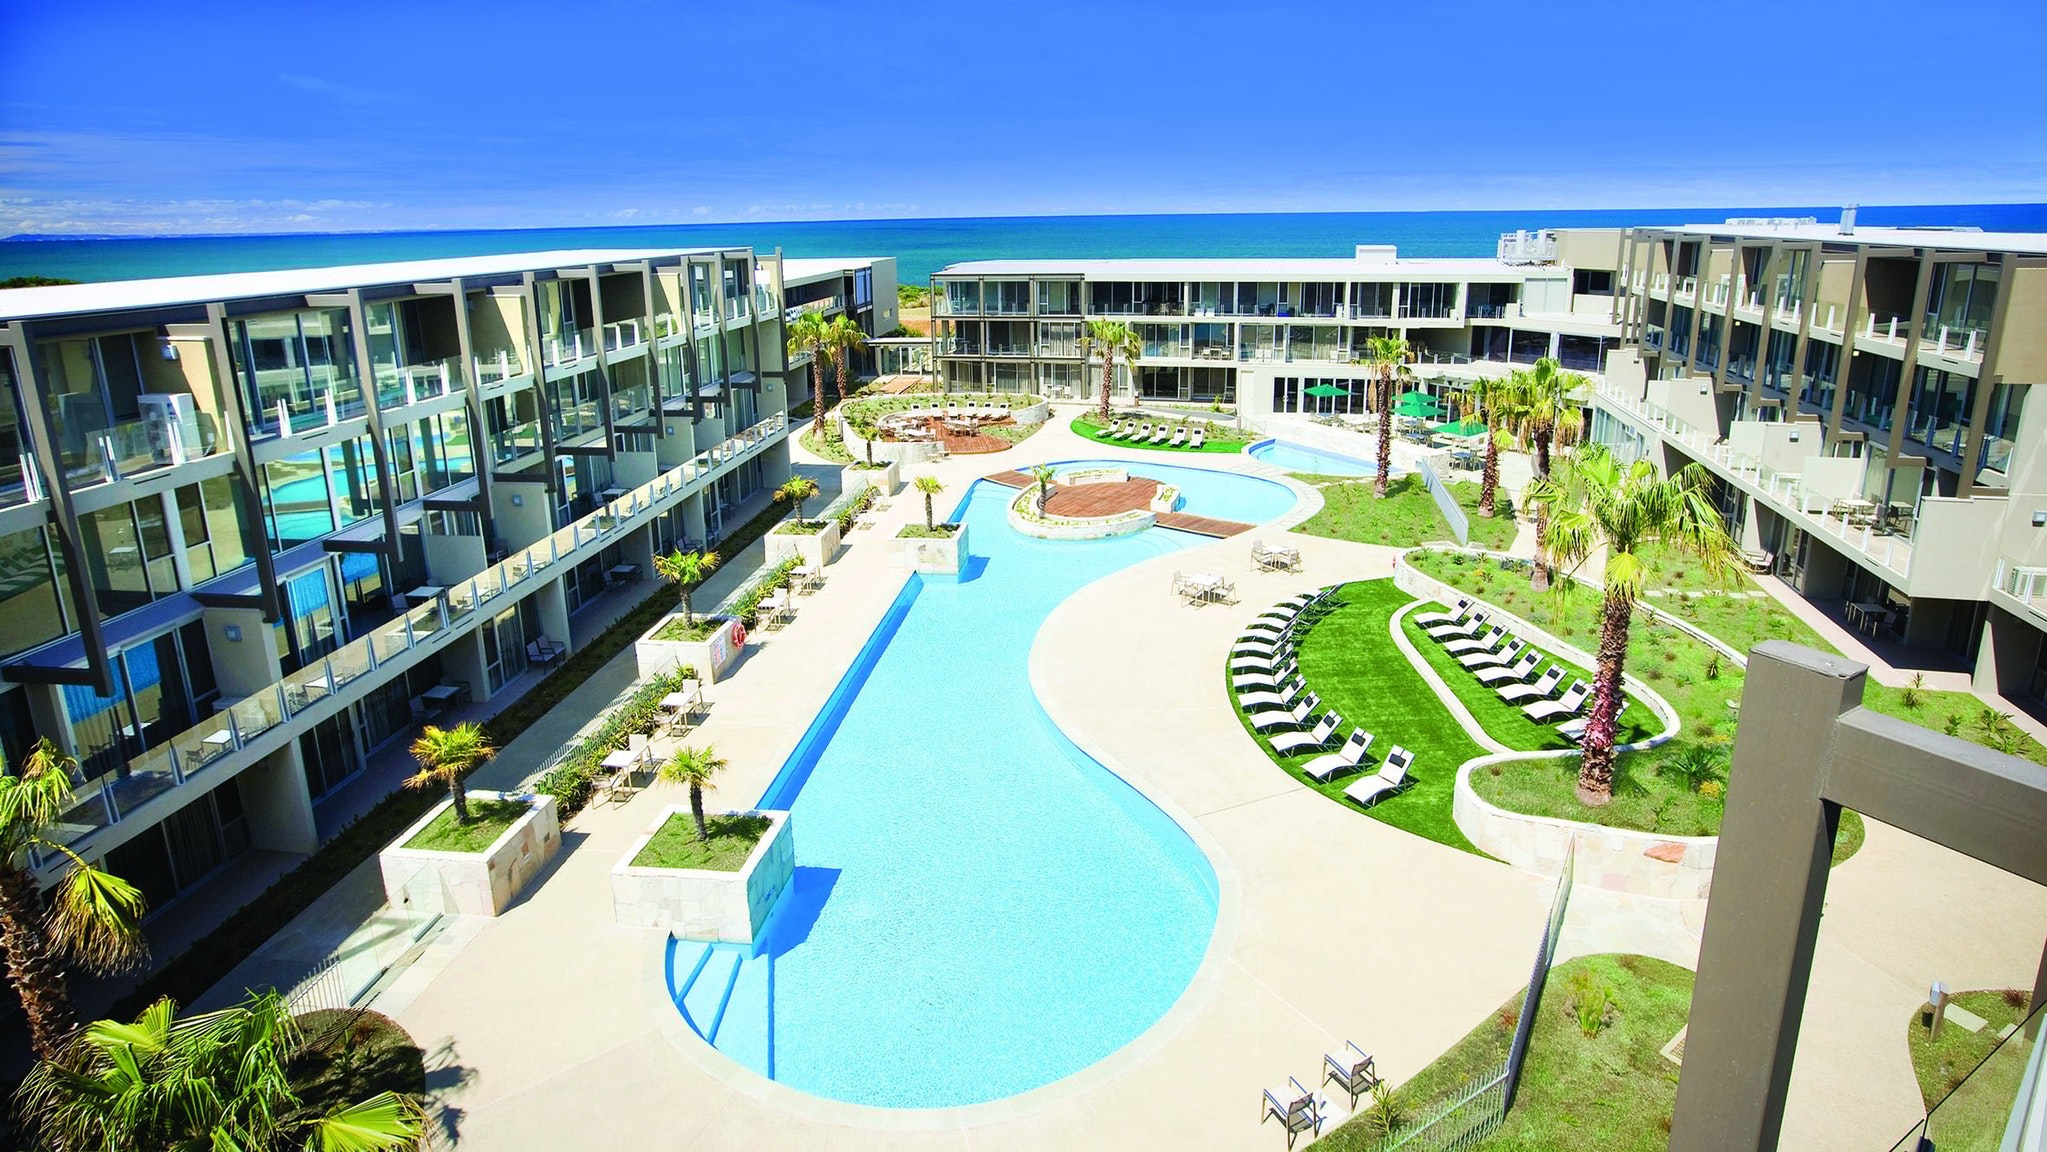 Wyndham resort torquay accommodation great ocean road - Hotel in torquay with indoor swimming pool ...